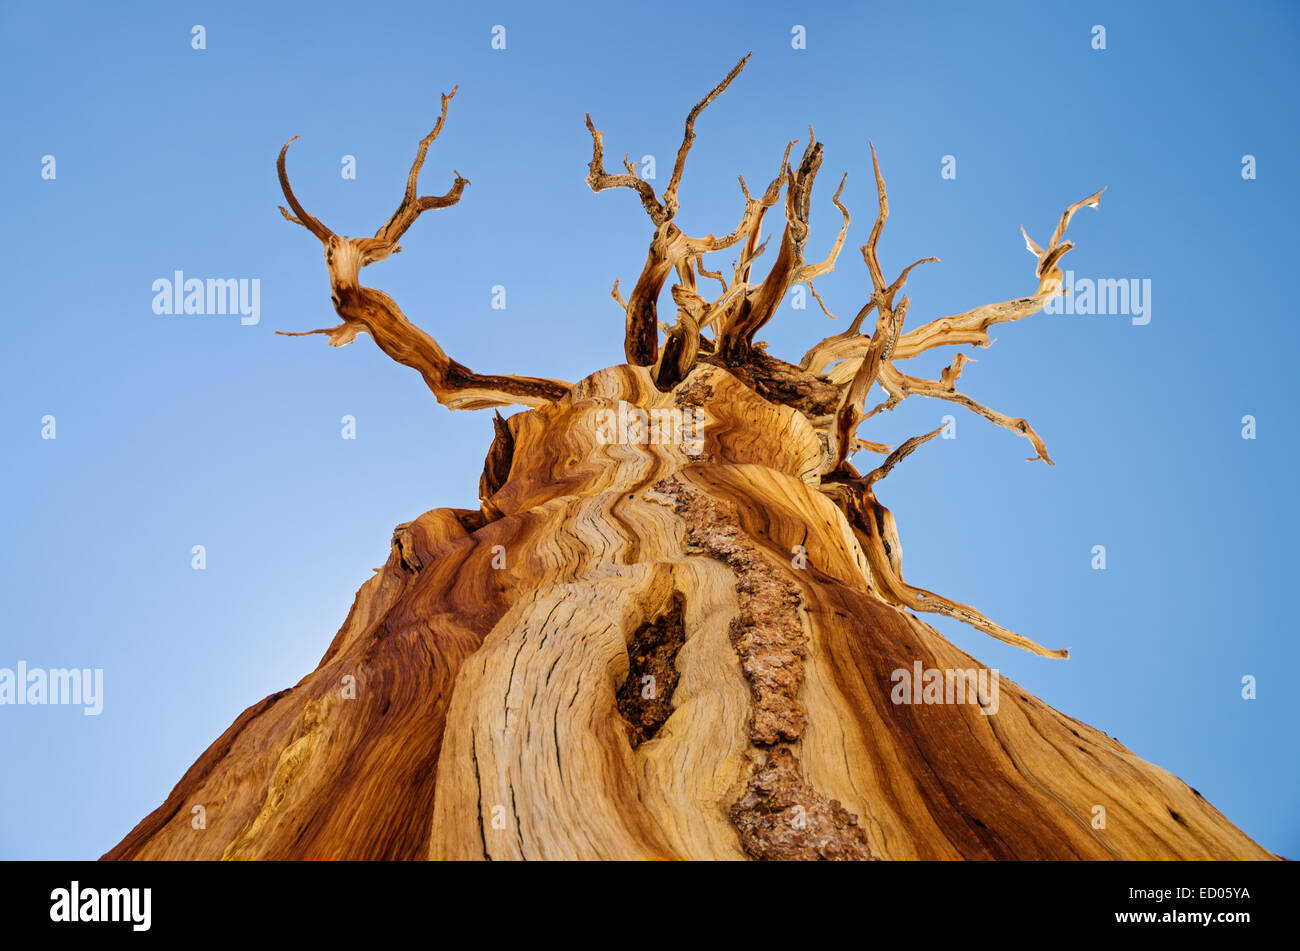 view up at a dead weathered pine tree with a few branches and blue sky background - Stock Image